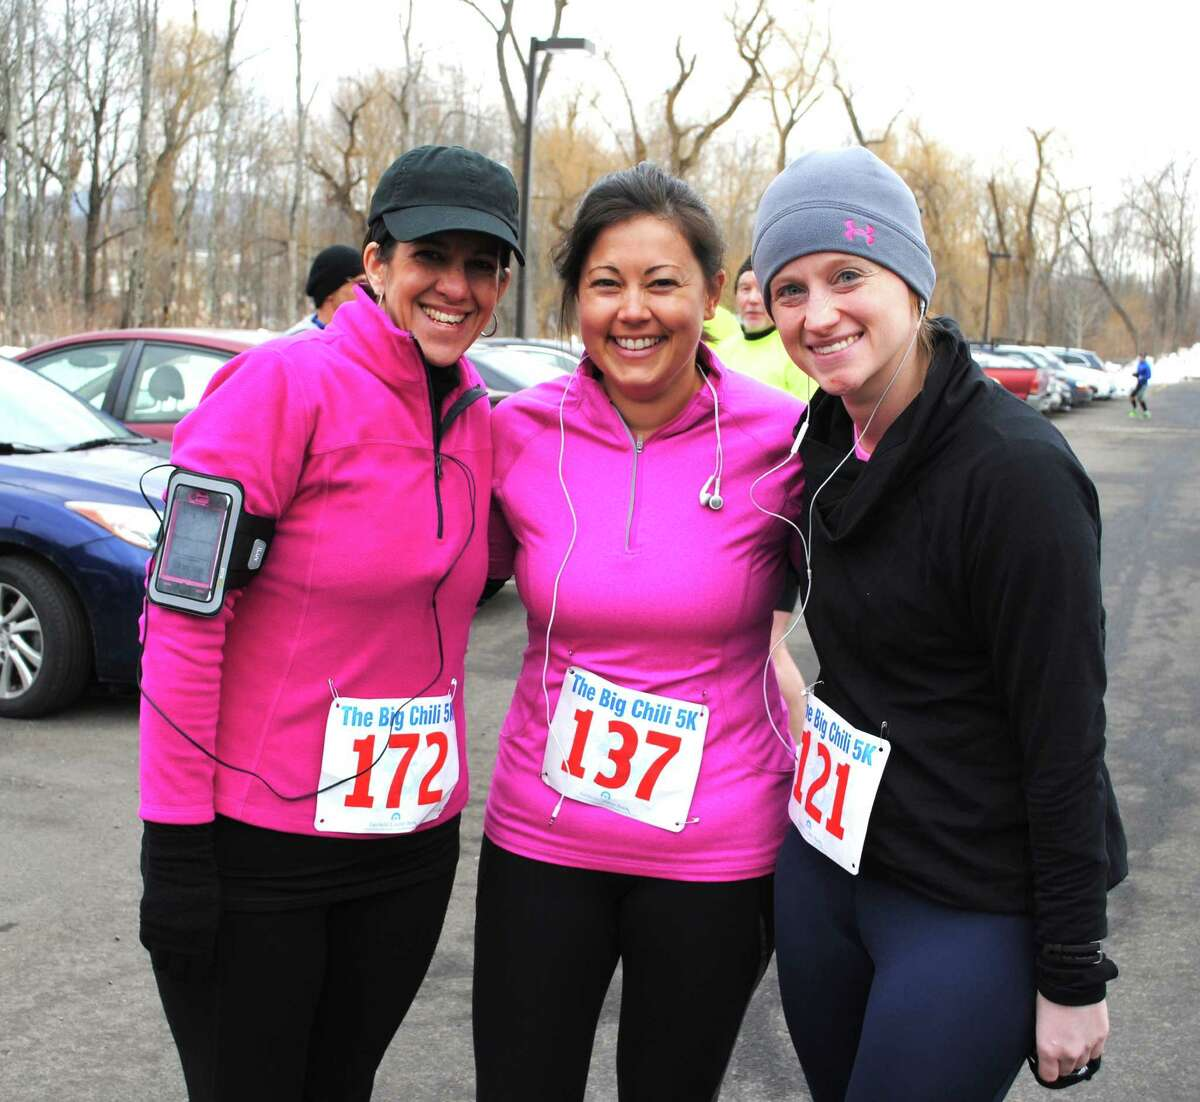 Over two hundred runners laced up to support the Danbury Westerners 2nd Annual